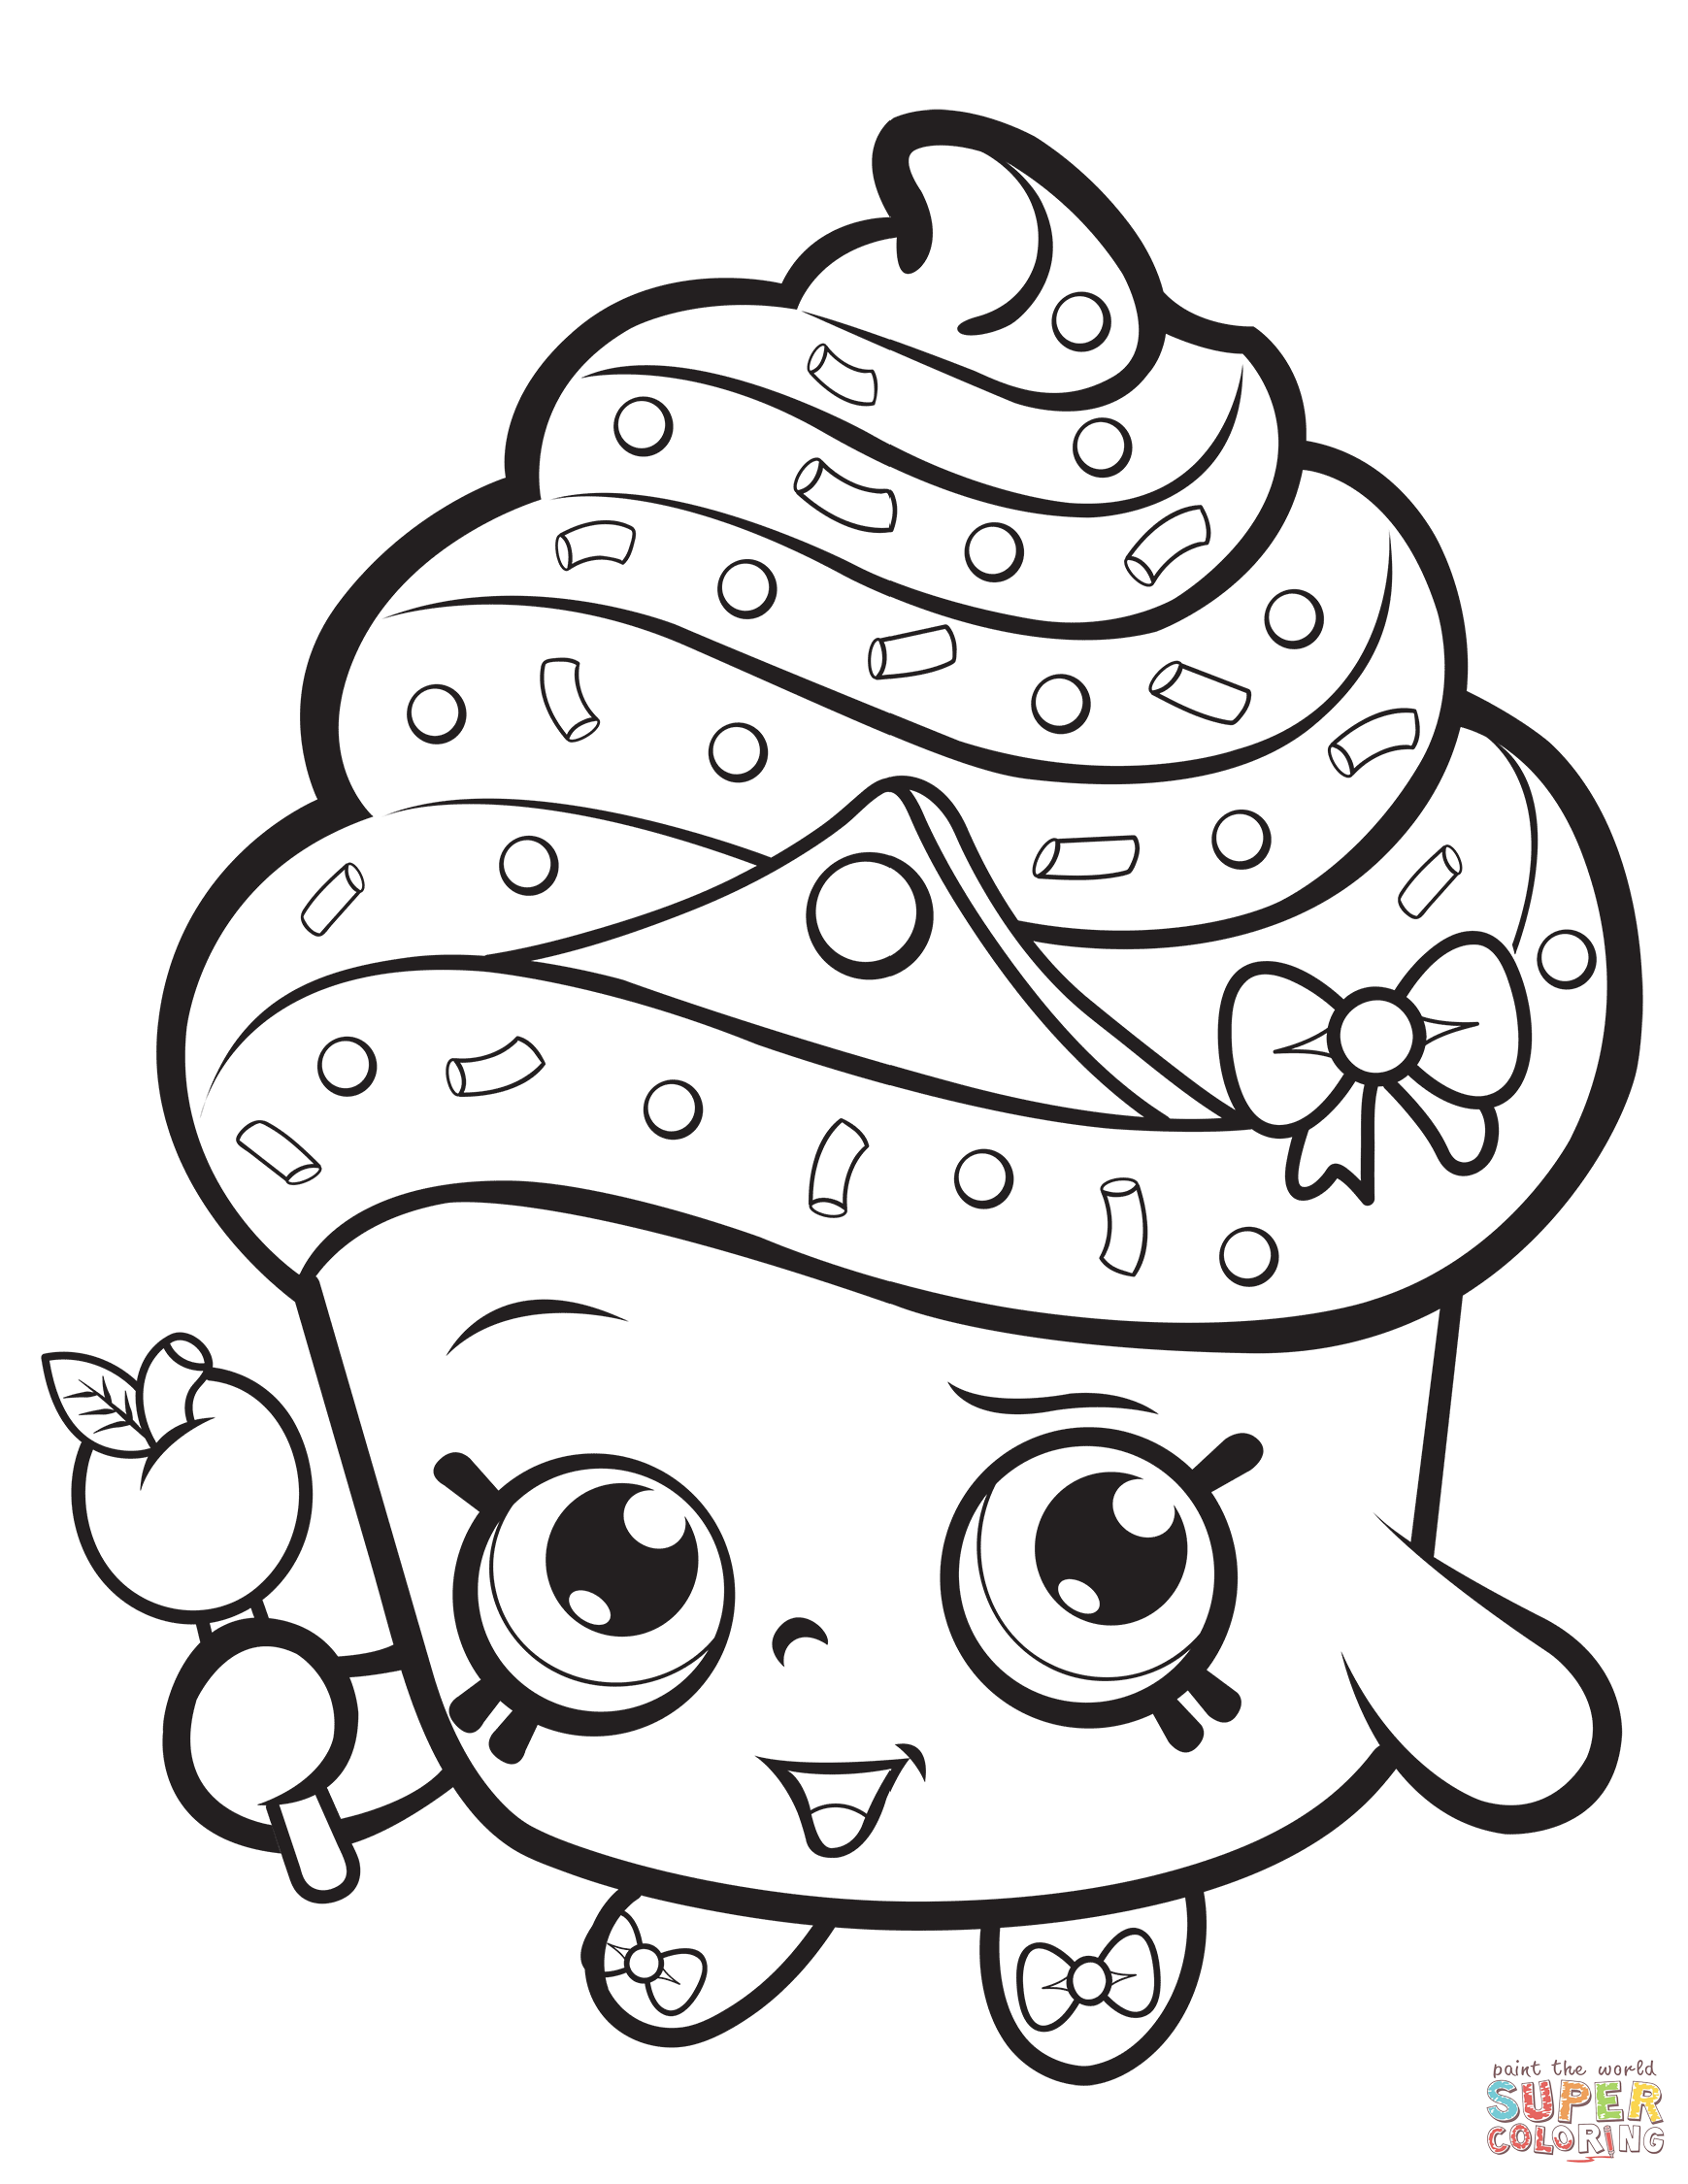 Shopkins Coloring Pages Cupcake Queen Cupcake Coloring Pages Shopkins Colouring Pages Princess Coloring Pages